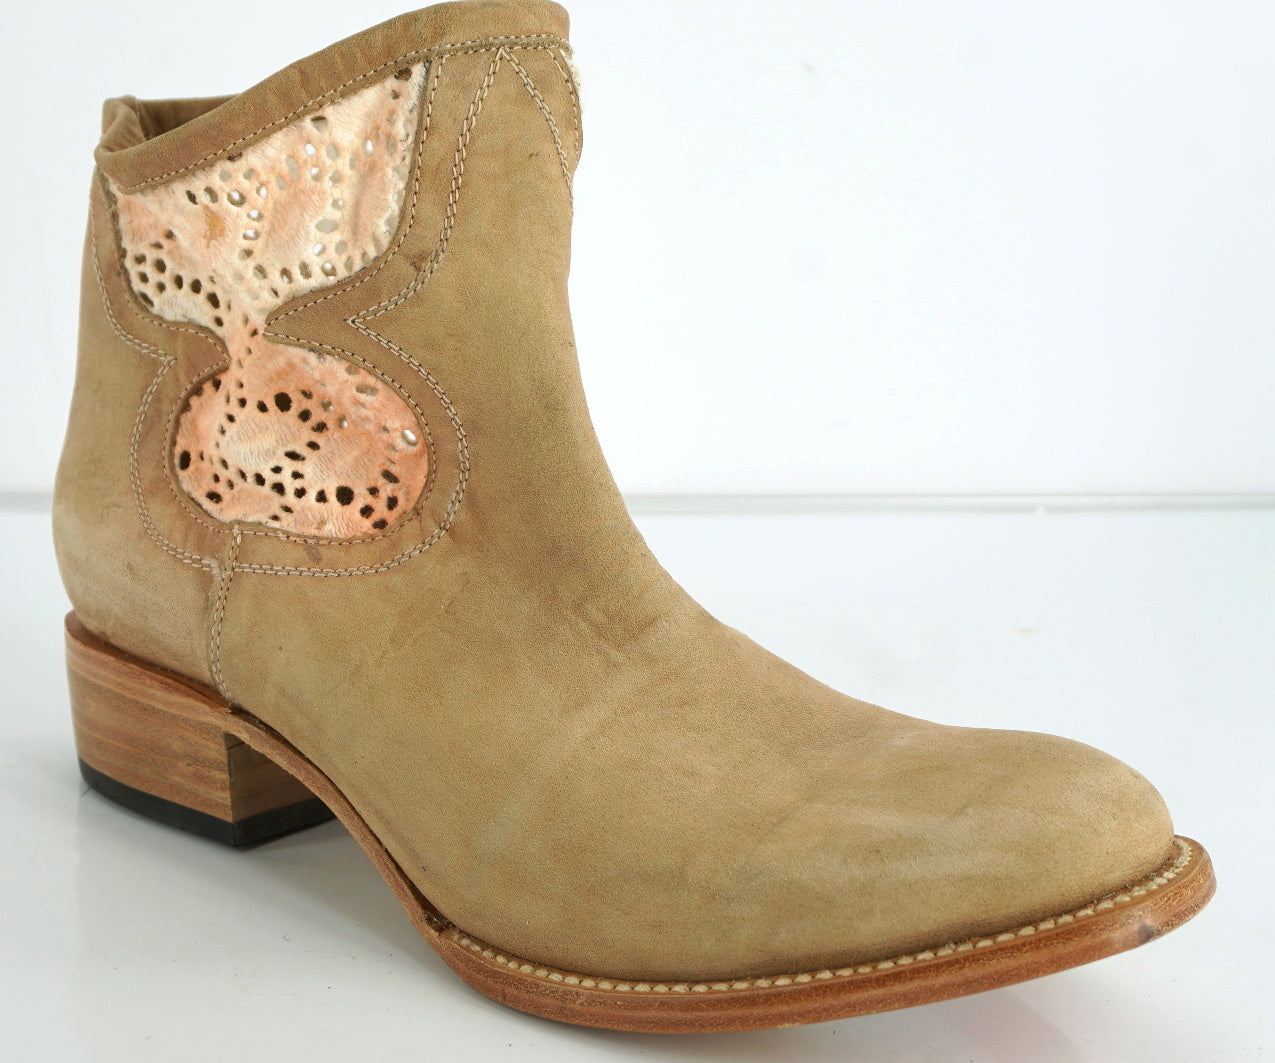 Freebird by Steven Cabcro Embroidered Canvas Leather Booties SZ 10 New $300